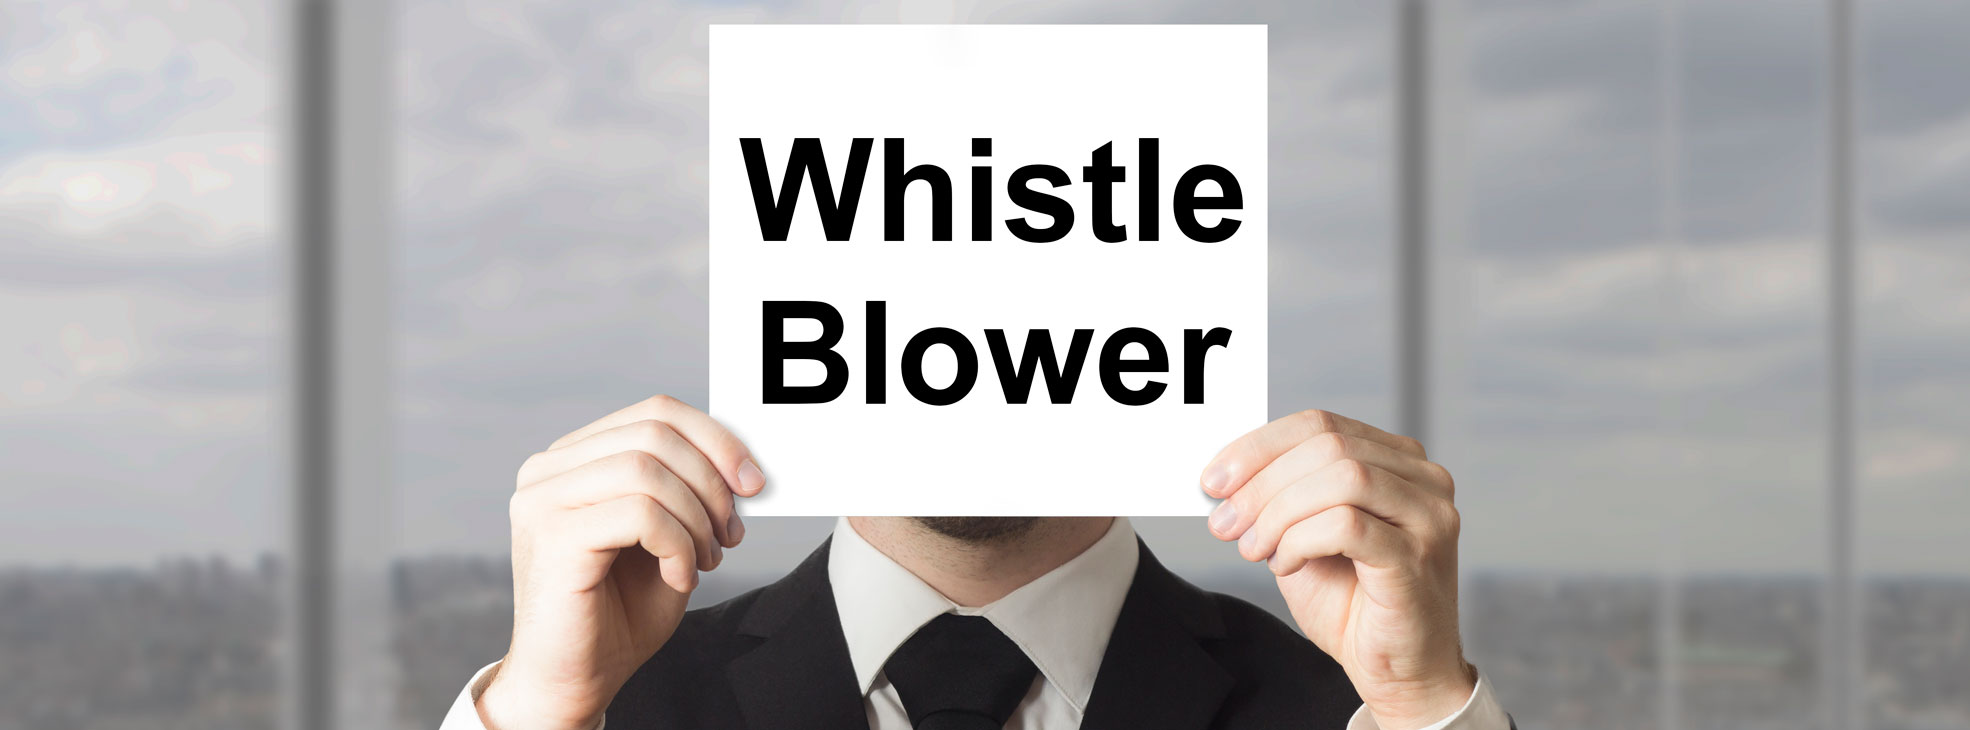 Wrongful Termination: Whistleblower Protections Apply To Matters Unrelated To Employment, Too